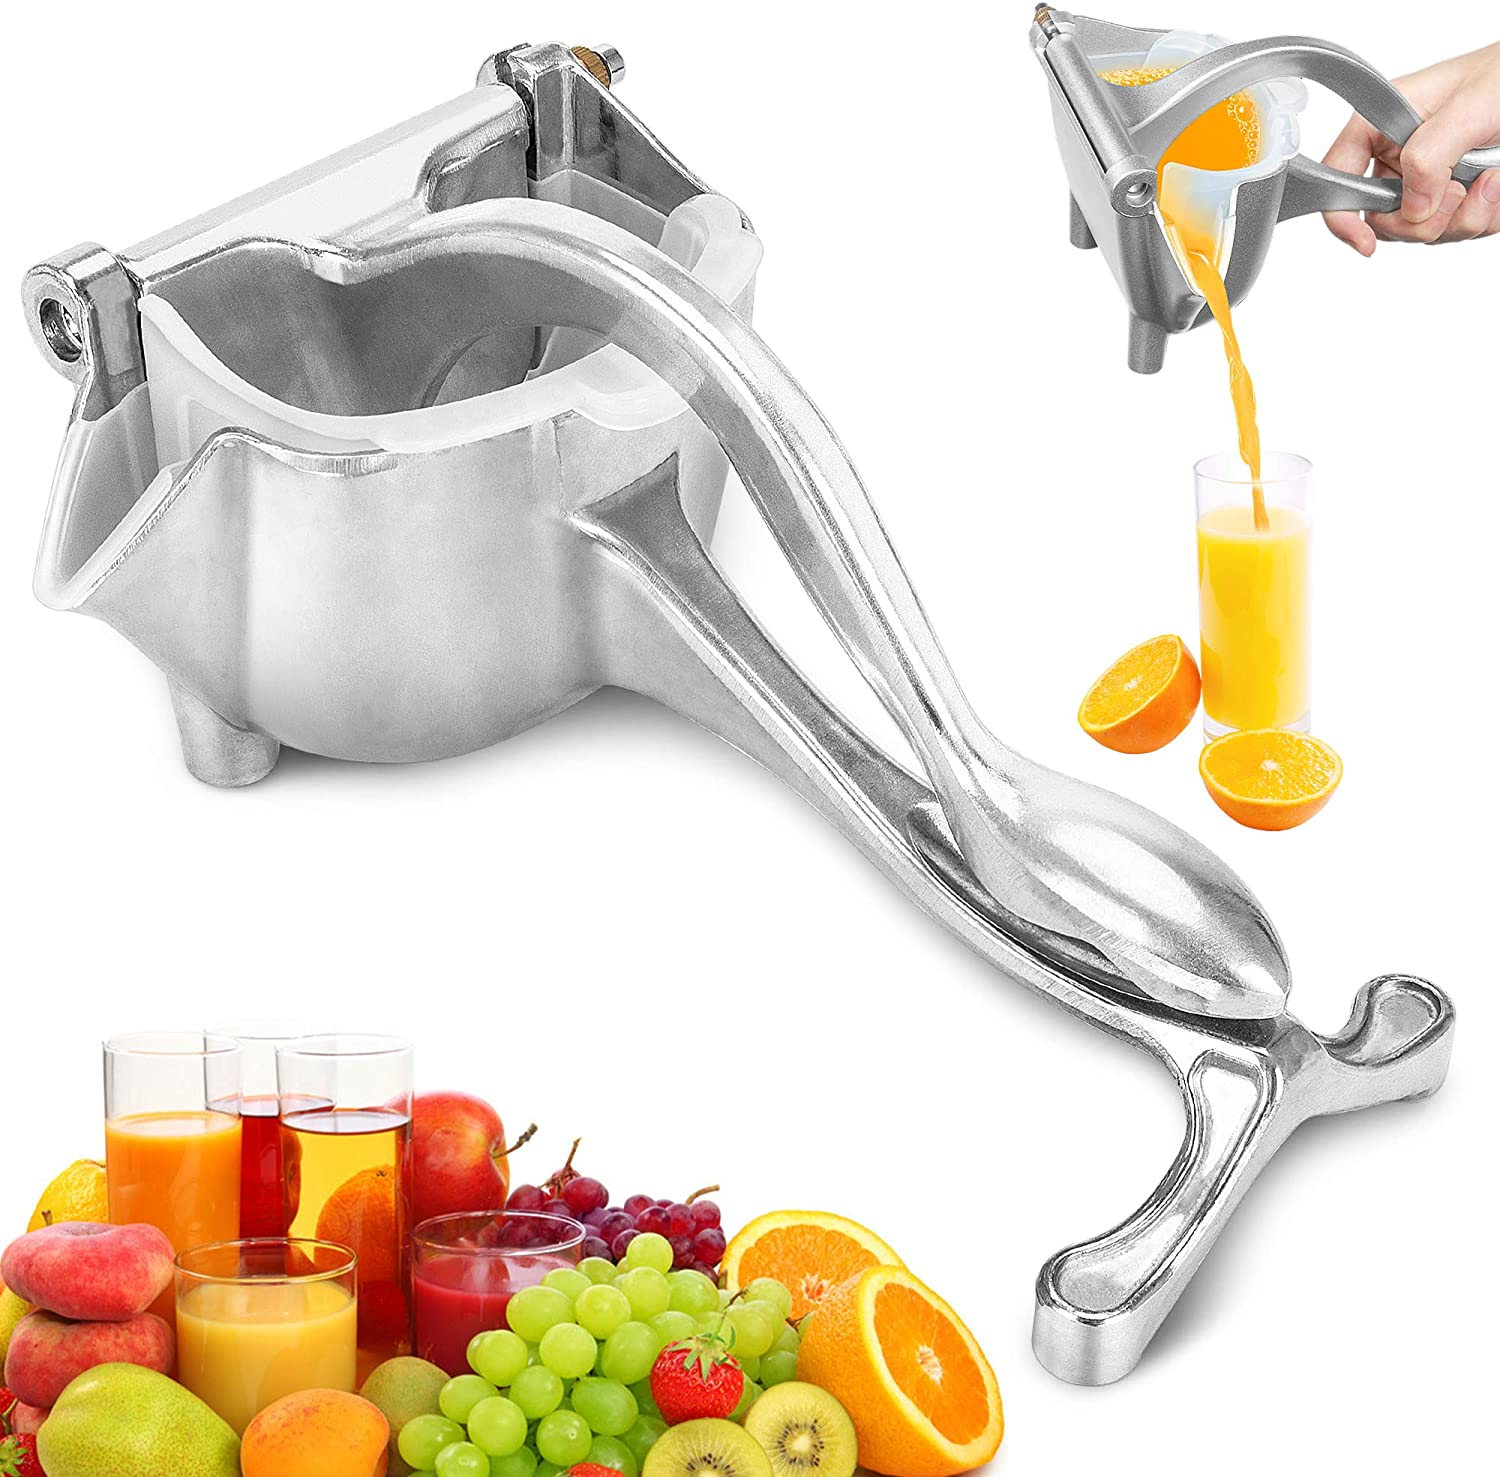 Manual Juicer, ENLOY Aluminum Alloy Heavy Duty Lemon Orange Squeezer, Easy Use Hand Press Fruit Juicer Citrus Extractor Tool